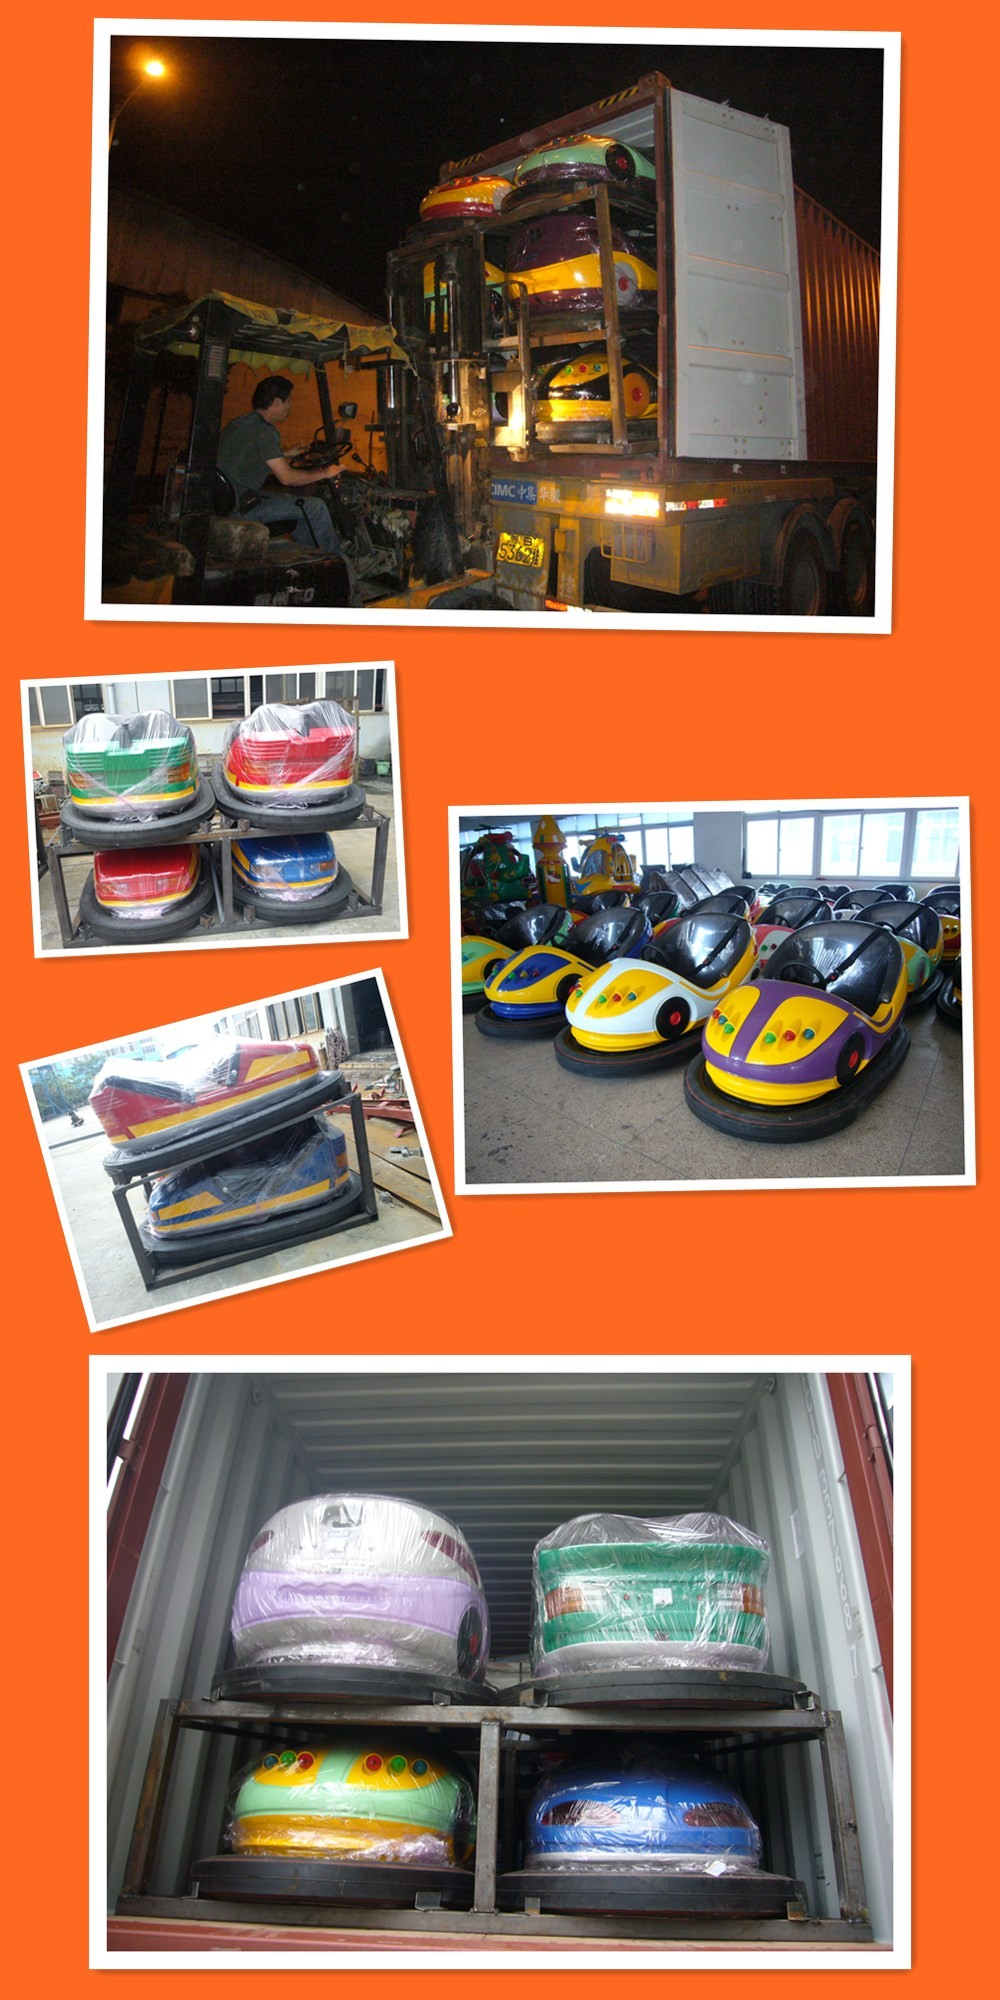 2016 NEW DESIGN KID RIDER,ElECTRIC ROCKING RIDER,SWING MACHINE With Low cost from China Factory Good Quality